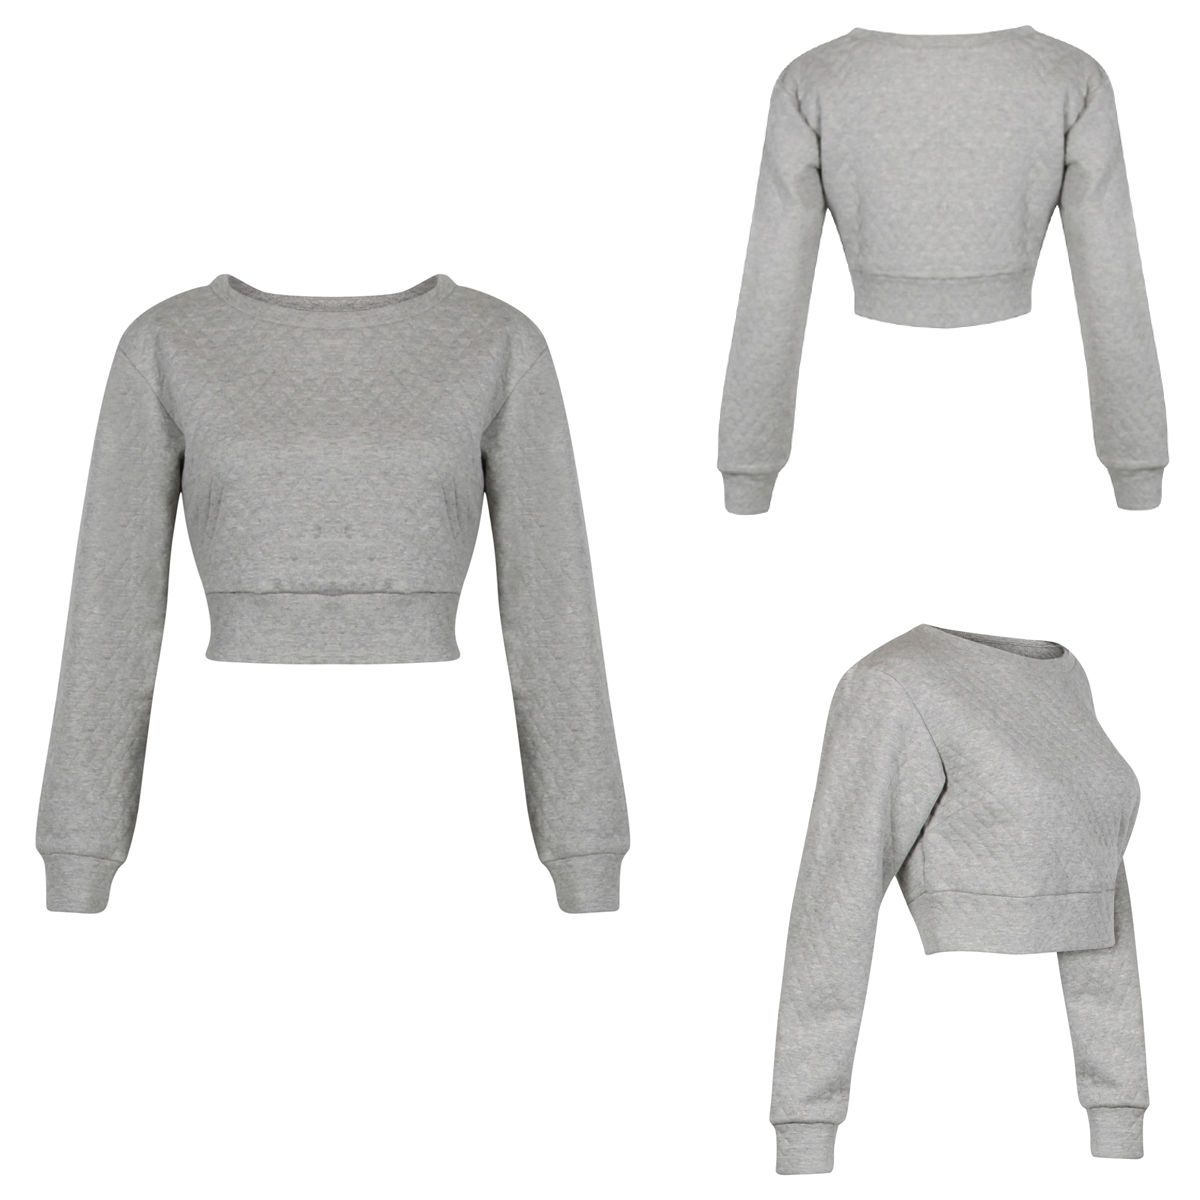 NEW WOMENS GLAMOROUS GREY QUILTED CROPPED SWEATSHIRT LADIES JUMPER TOP  Enlarged Preview